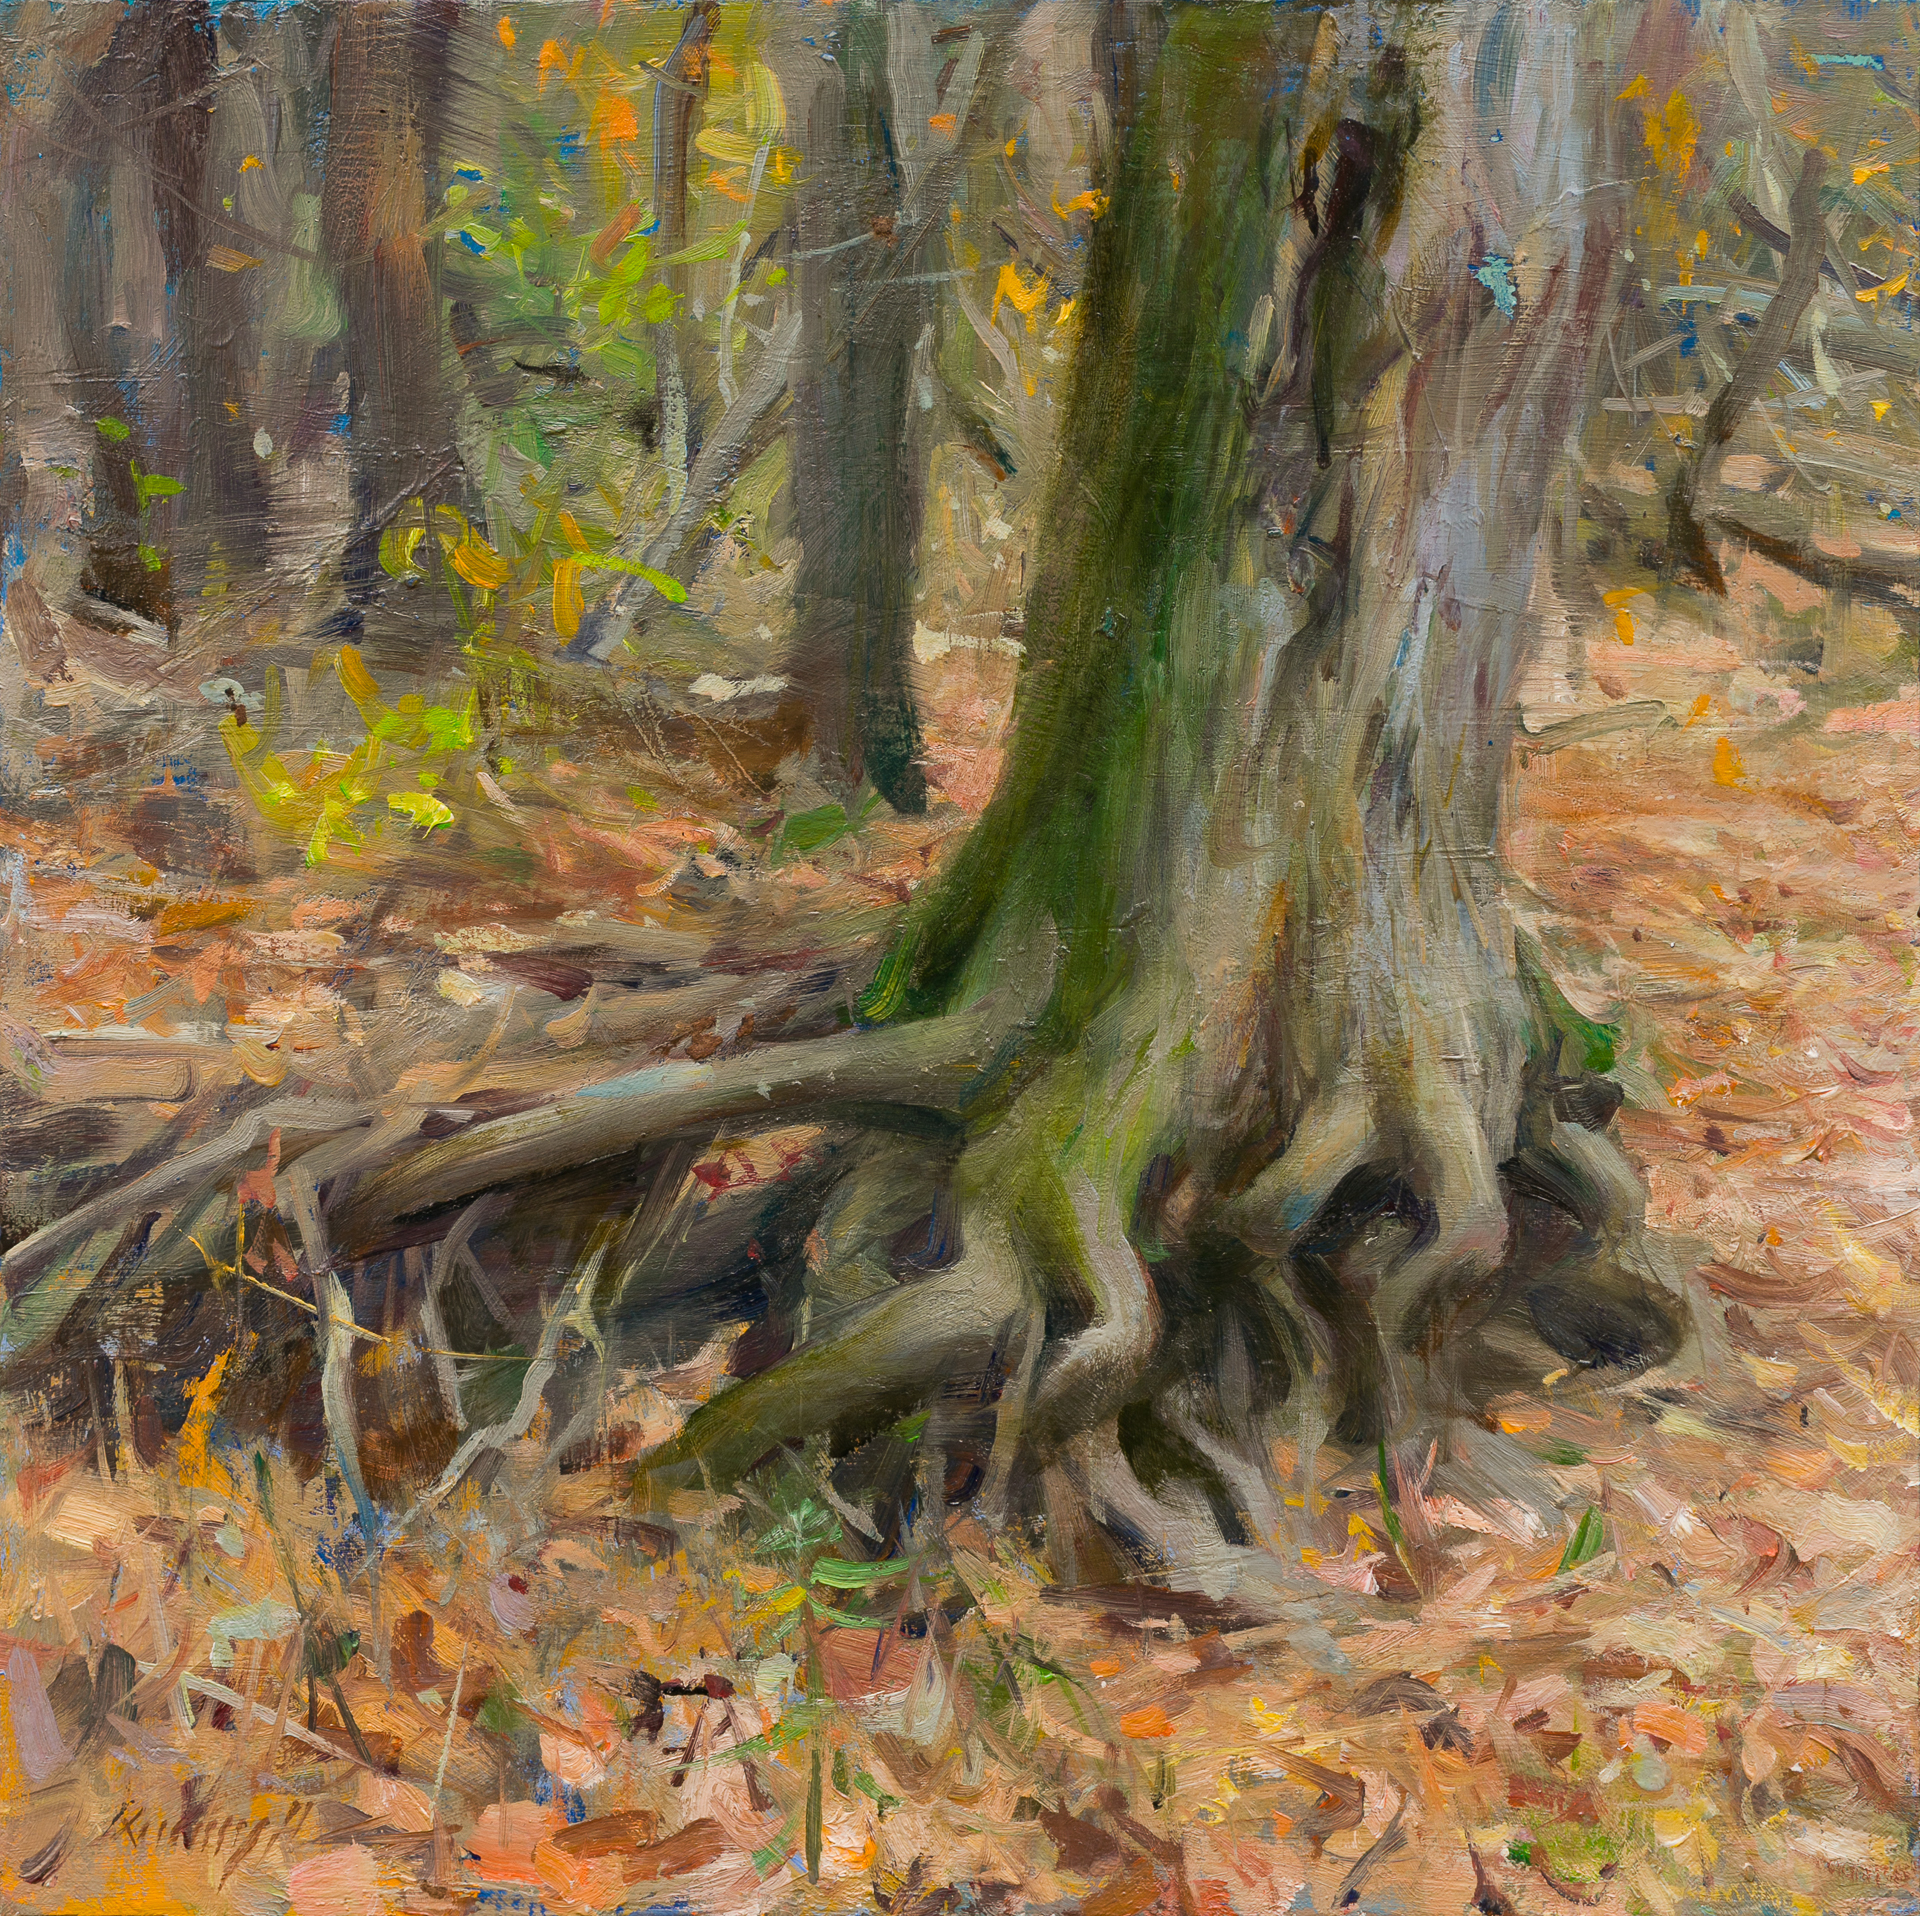 Exposed Roots - West Virginia by Quang Ho